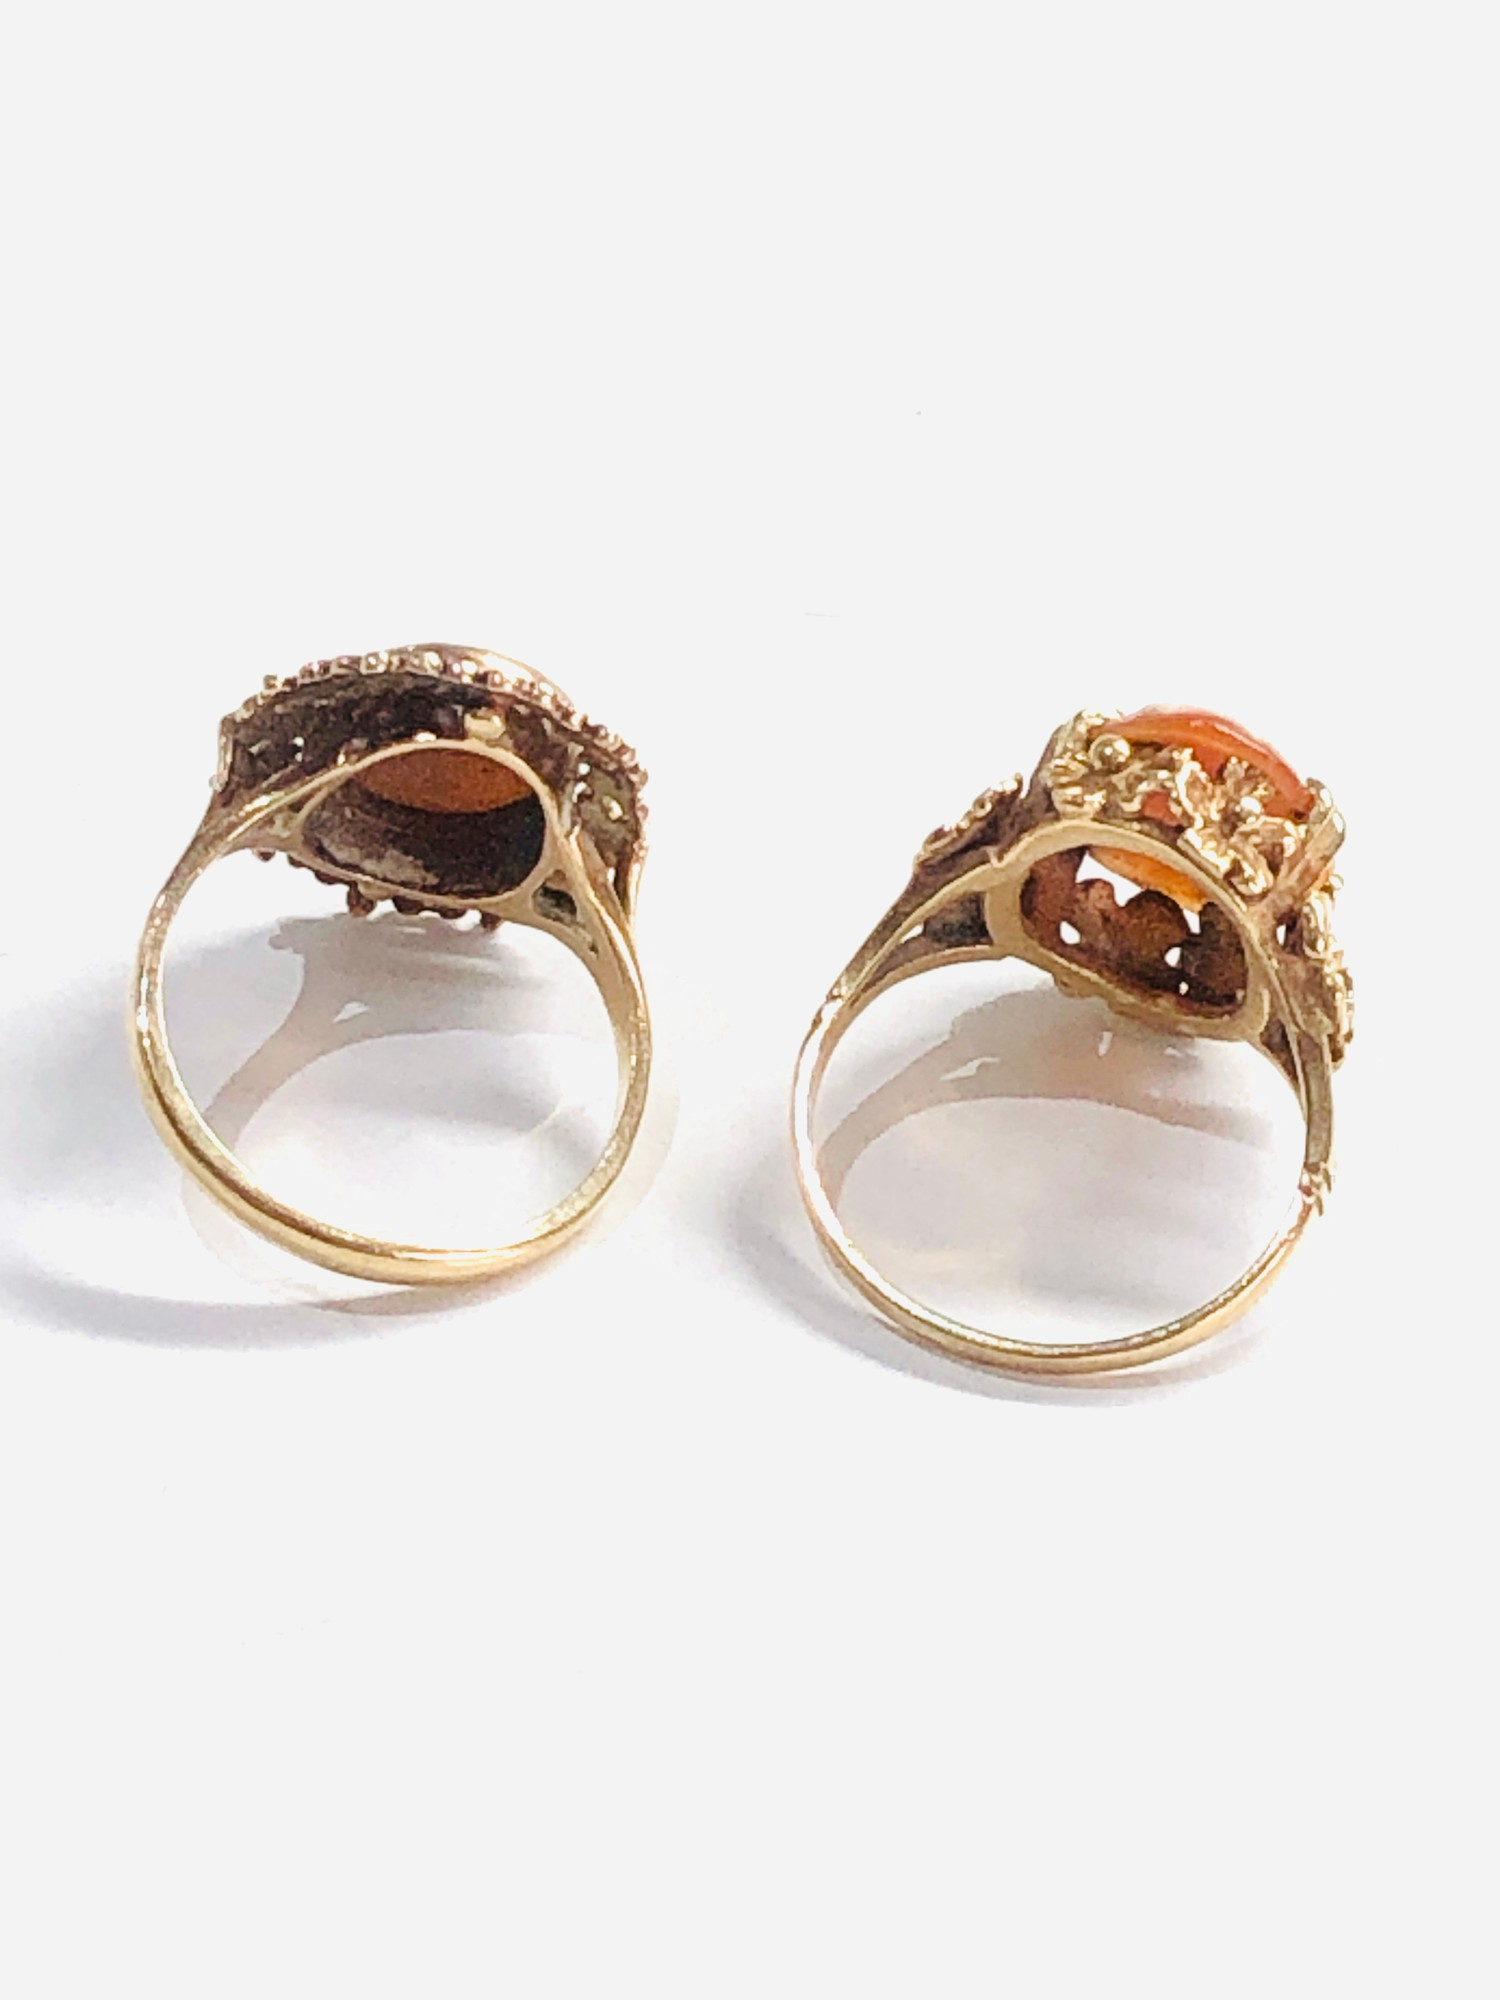 2 x 9ct gold vintage cameo floral framed rings 6g - Image 3 of 3